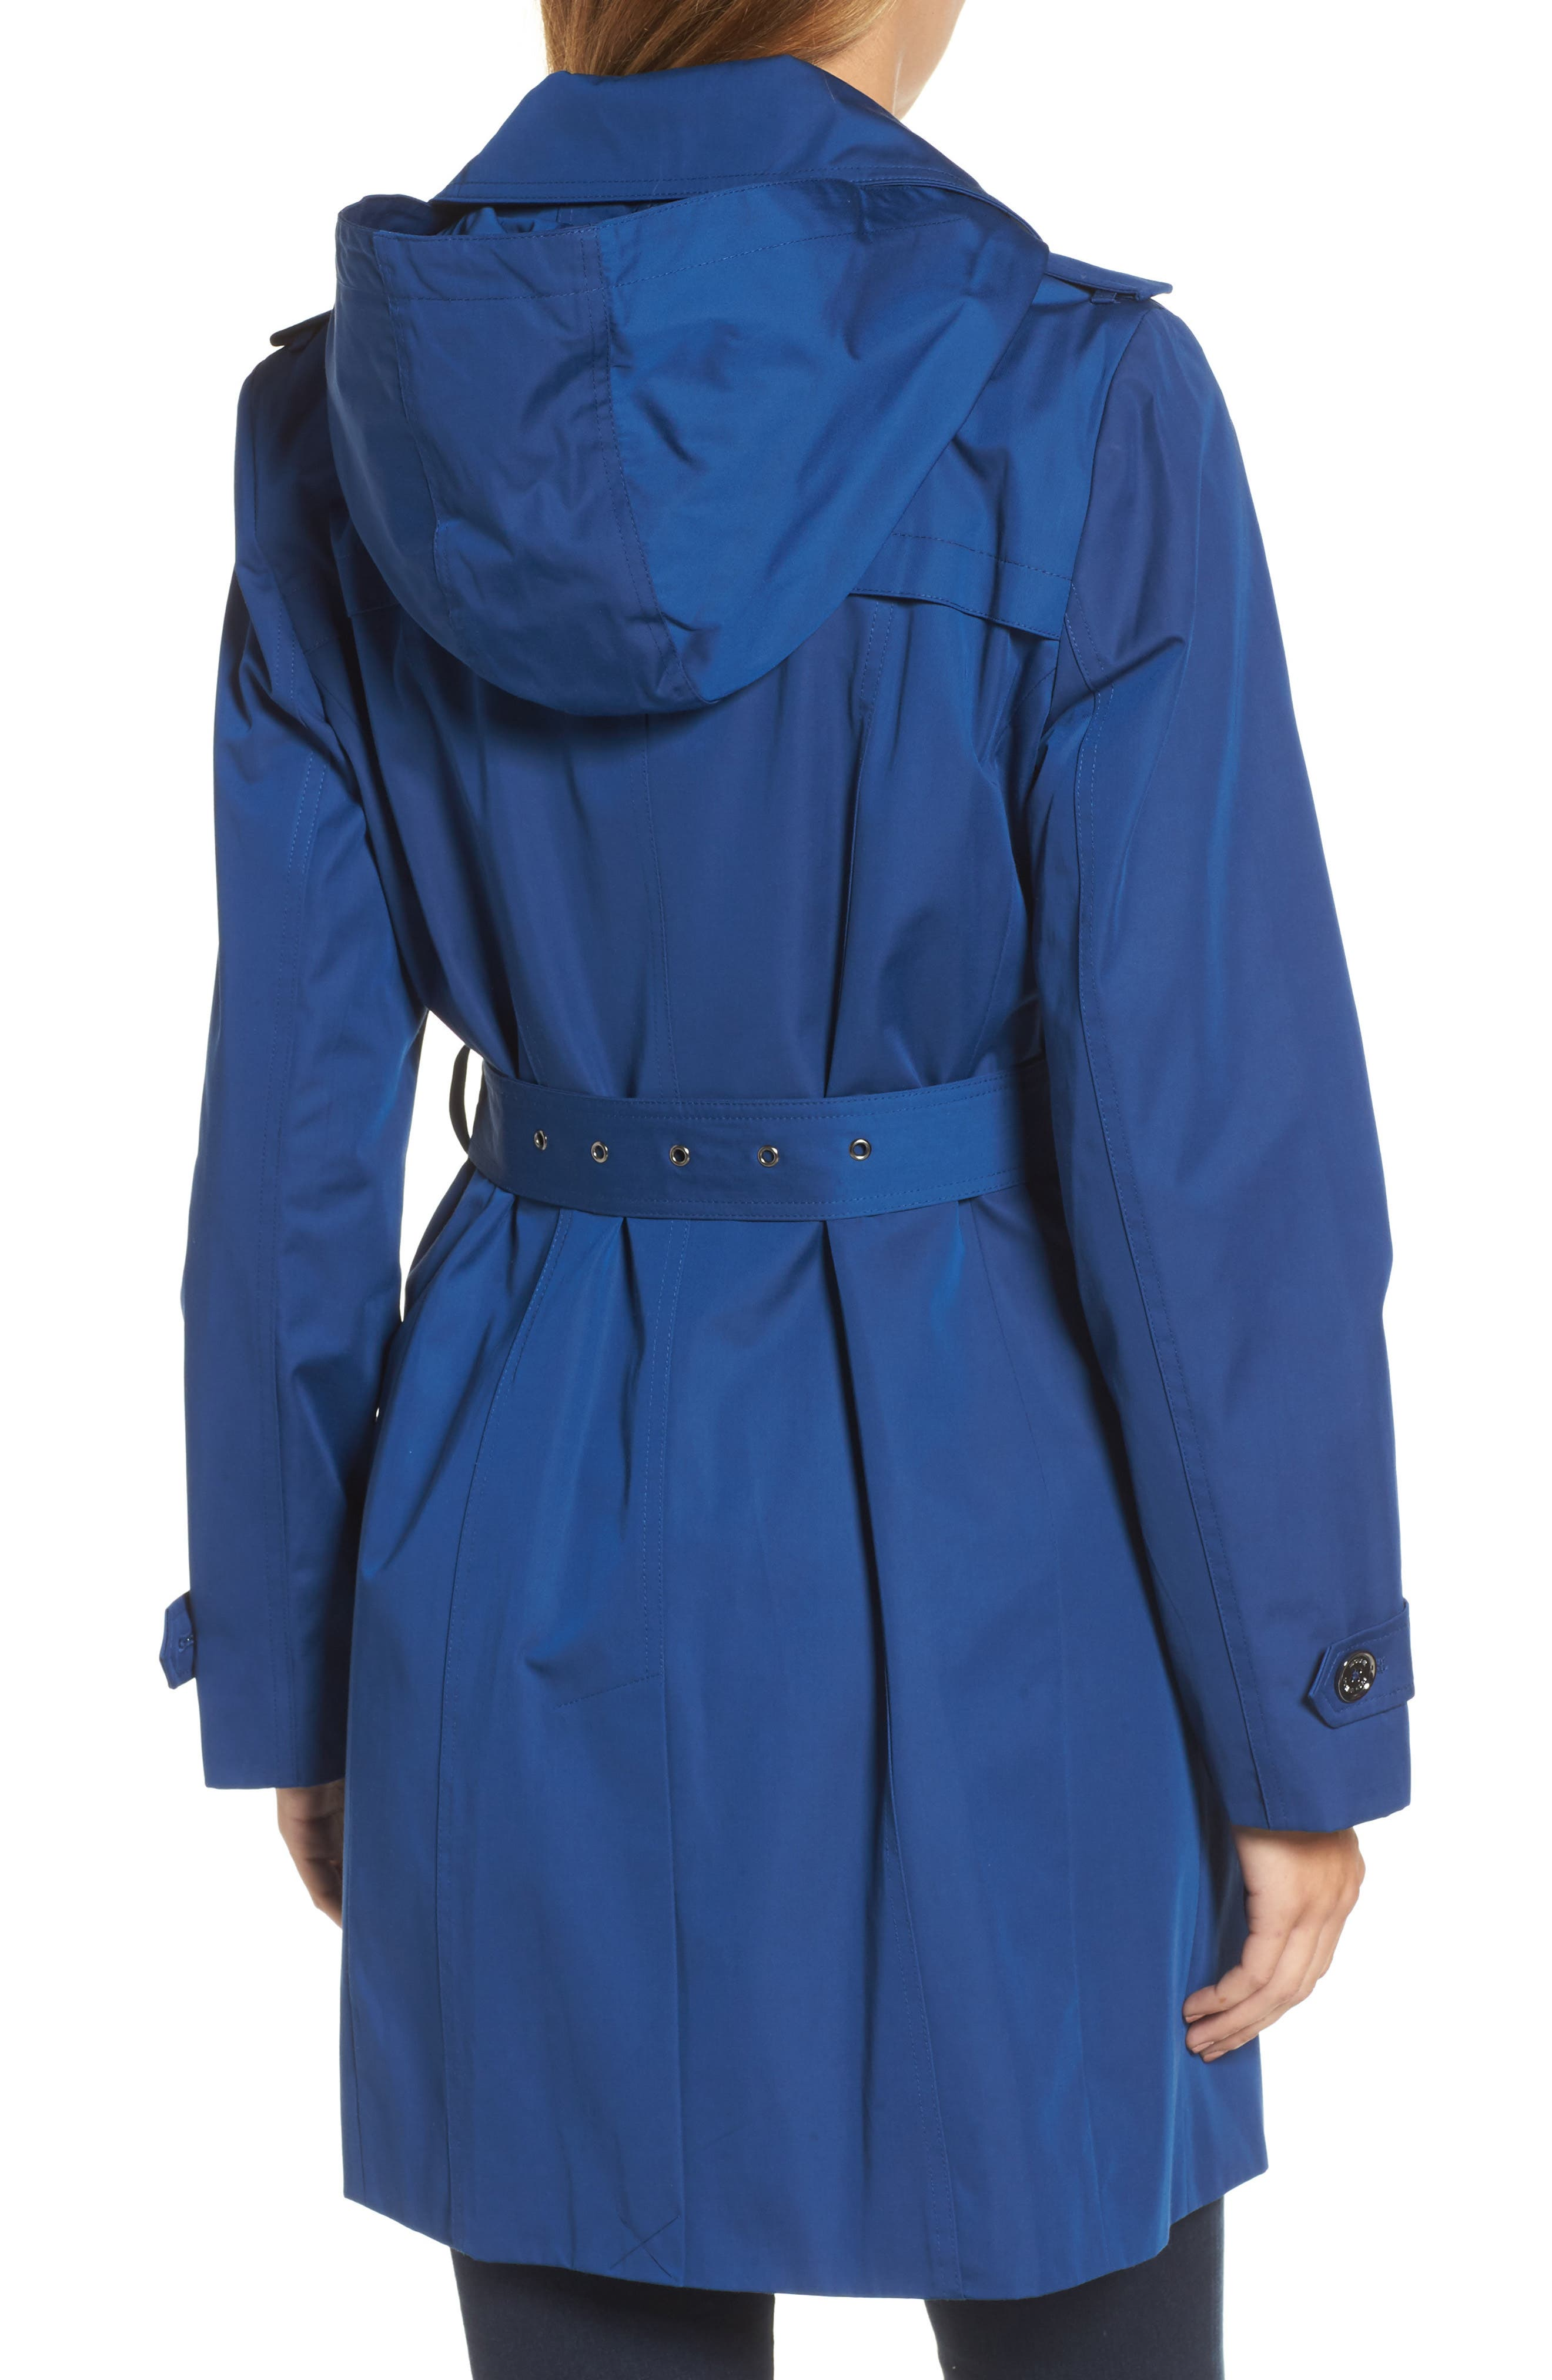 Core Trench Coat with Removable Hood & Liner,                             Alternate thumbnail 2, color,                             431